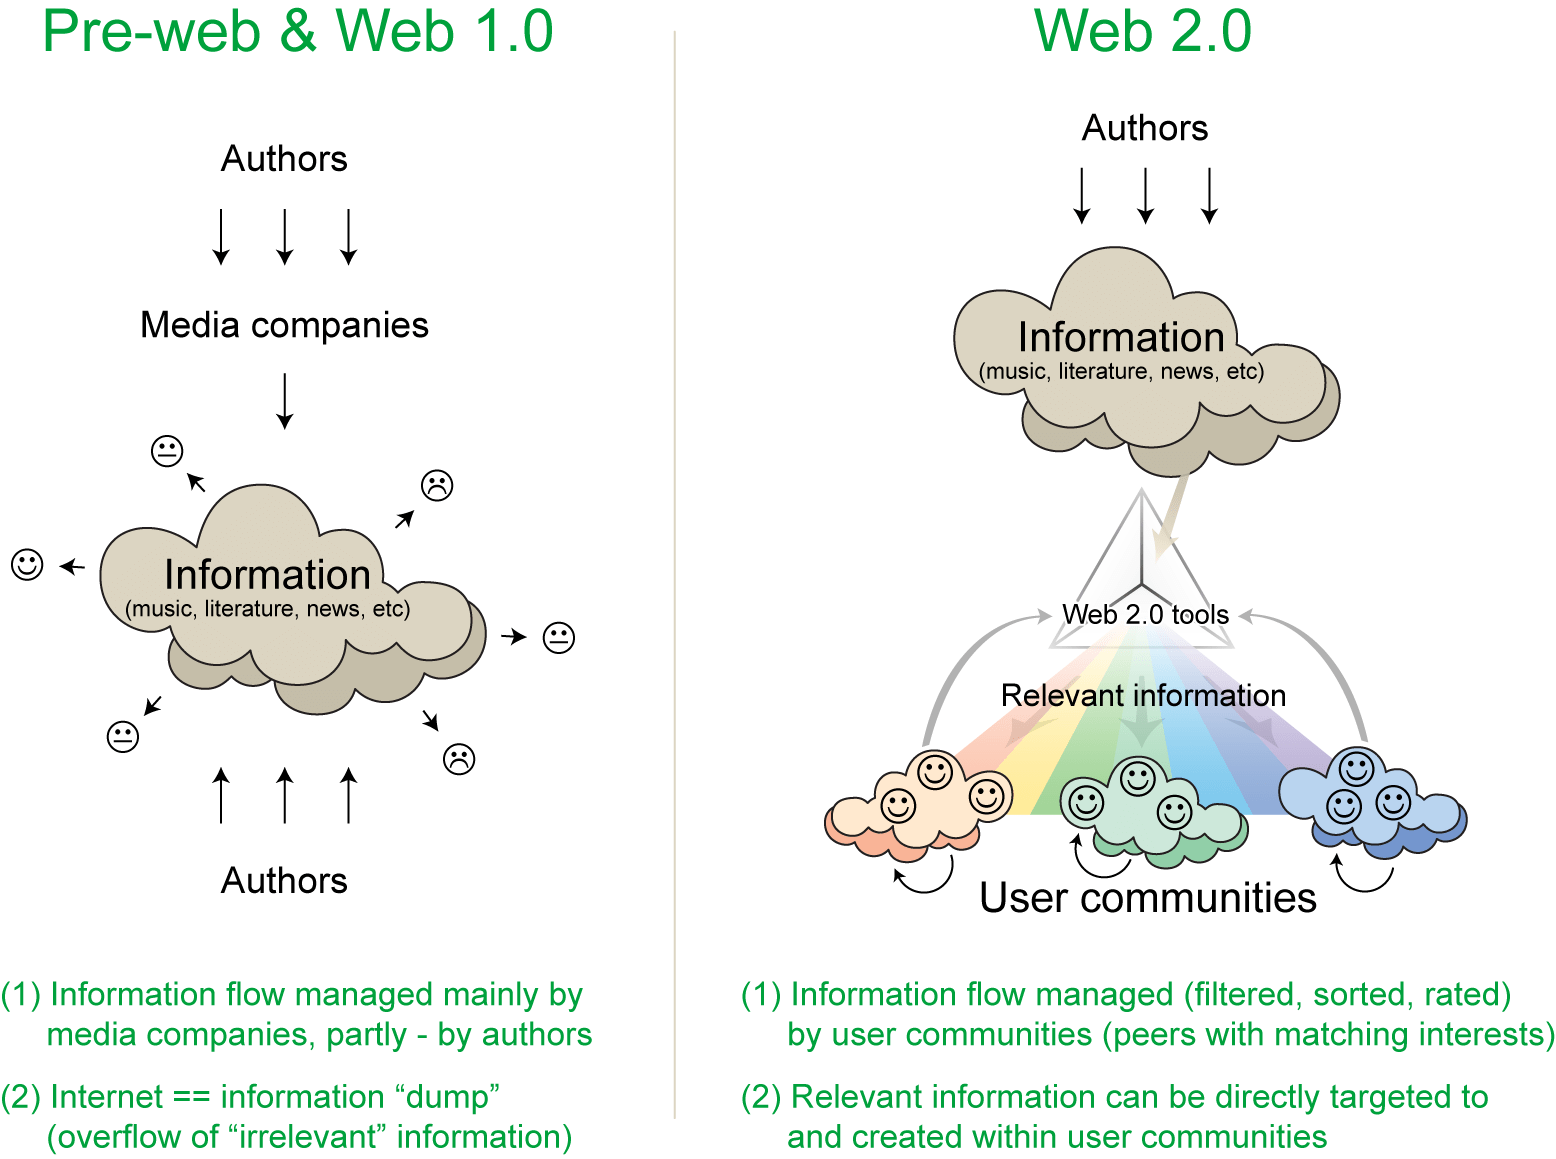 How Web 2.0 works